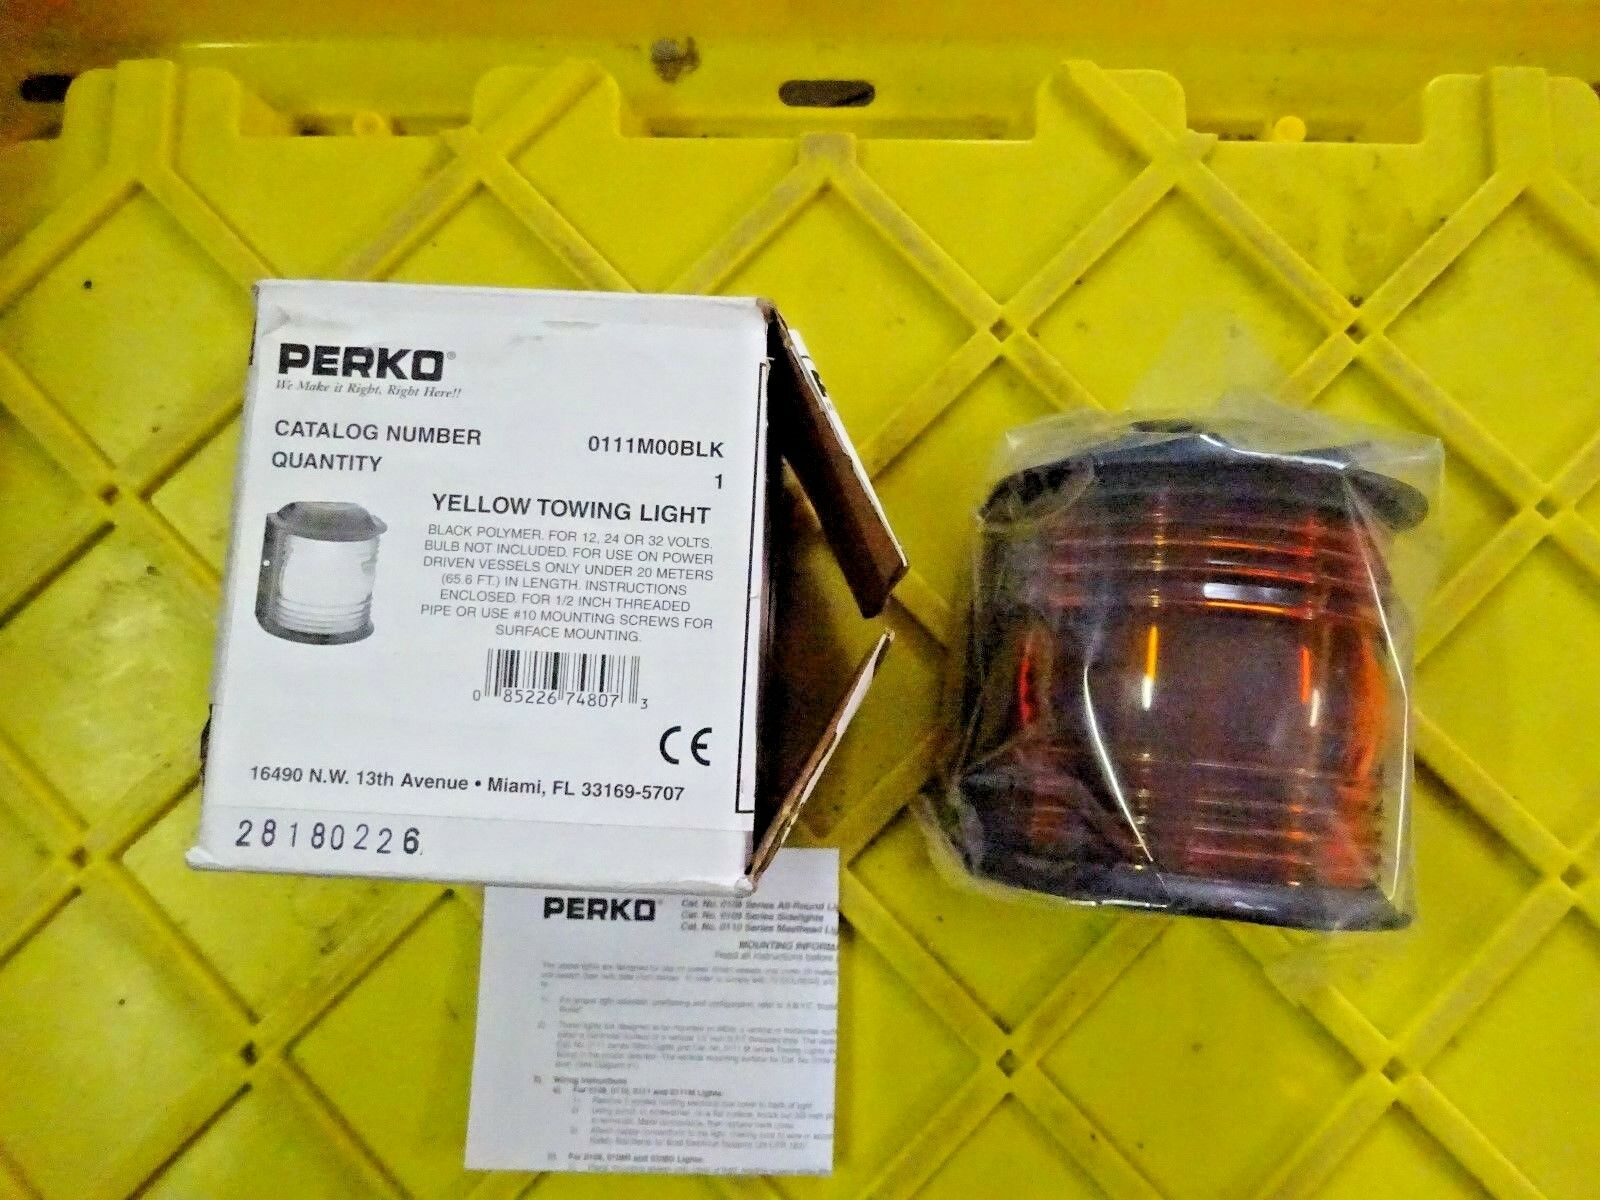 PERKO Yellow Towing Light, 111-M00-BLK, For 12 or 32 Volts